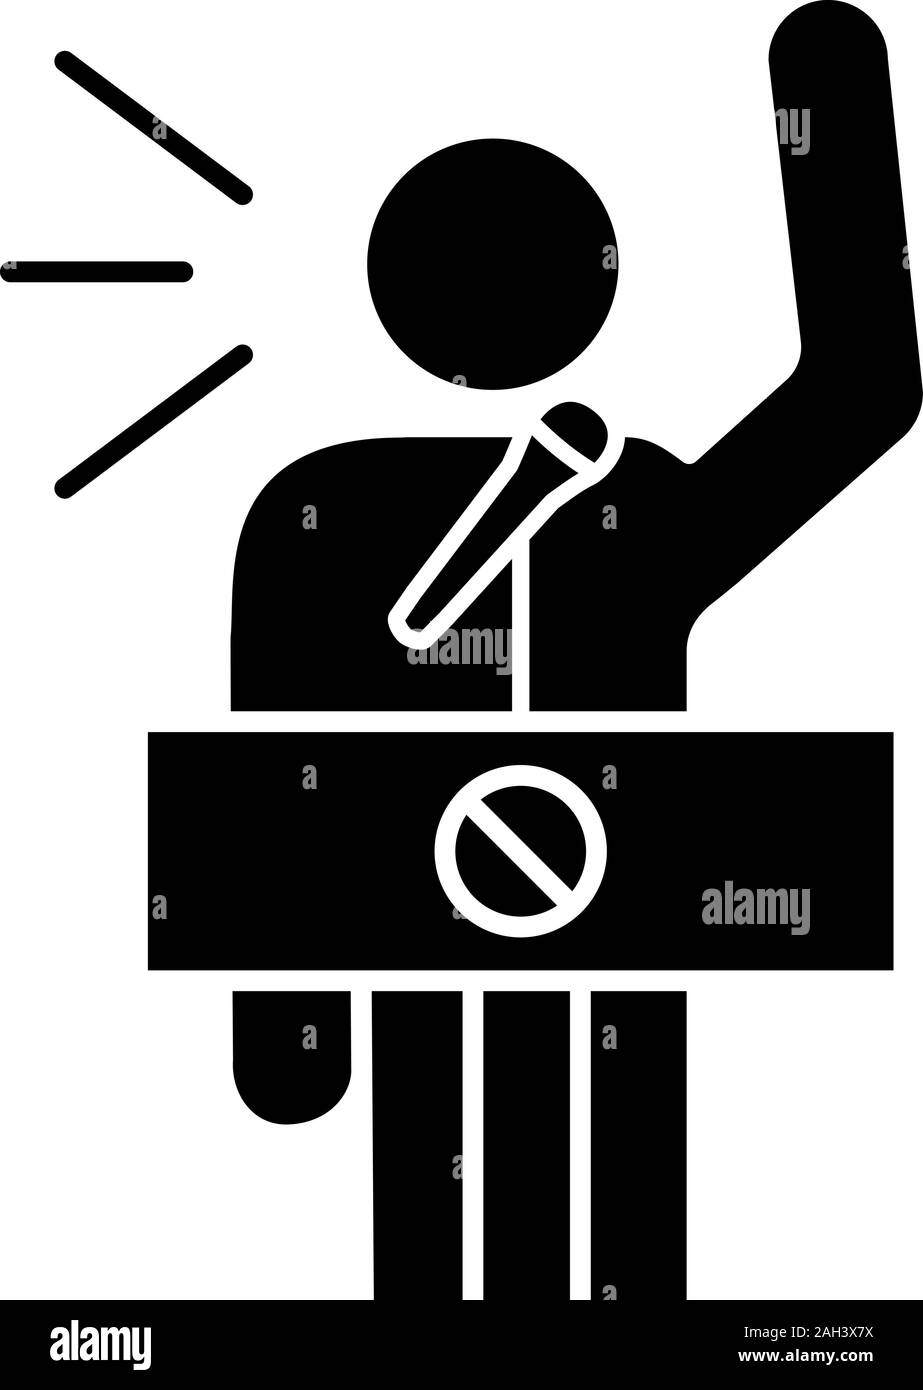 Protester speech glyph icon. Political protest. Political or social movement participant. Protest leader. Person shouting slogans. Silhouette symbol. Stock Vector